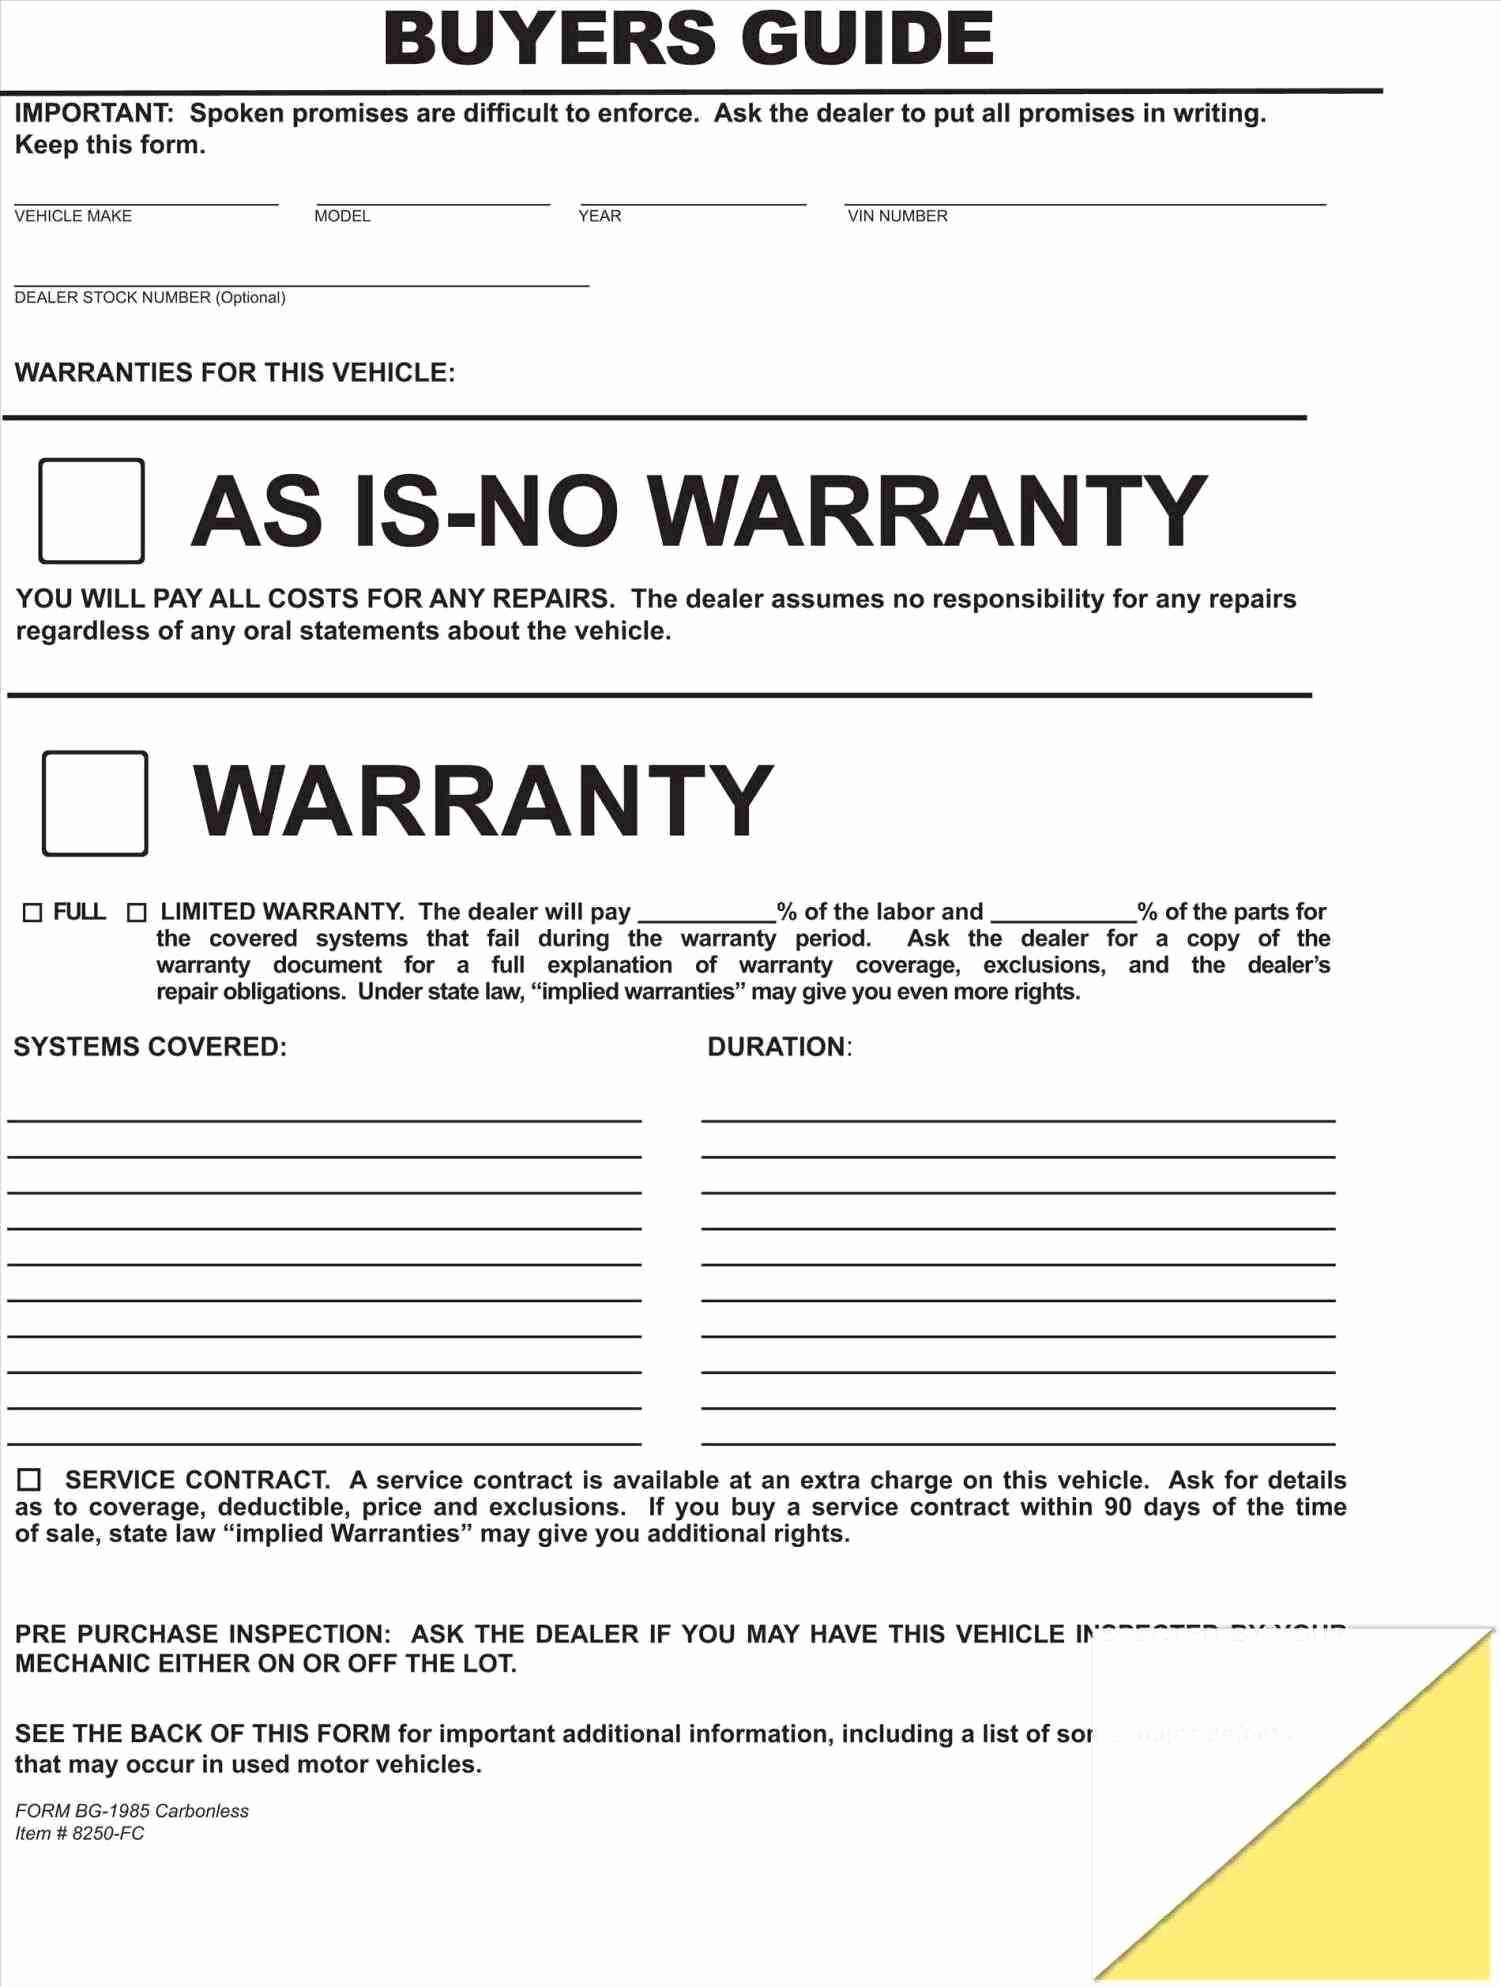 Bill Of Sale Payment Agreement Awesome Motorcycle Purchase Agreement Template New Samples Bill